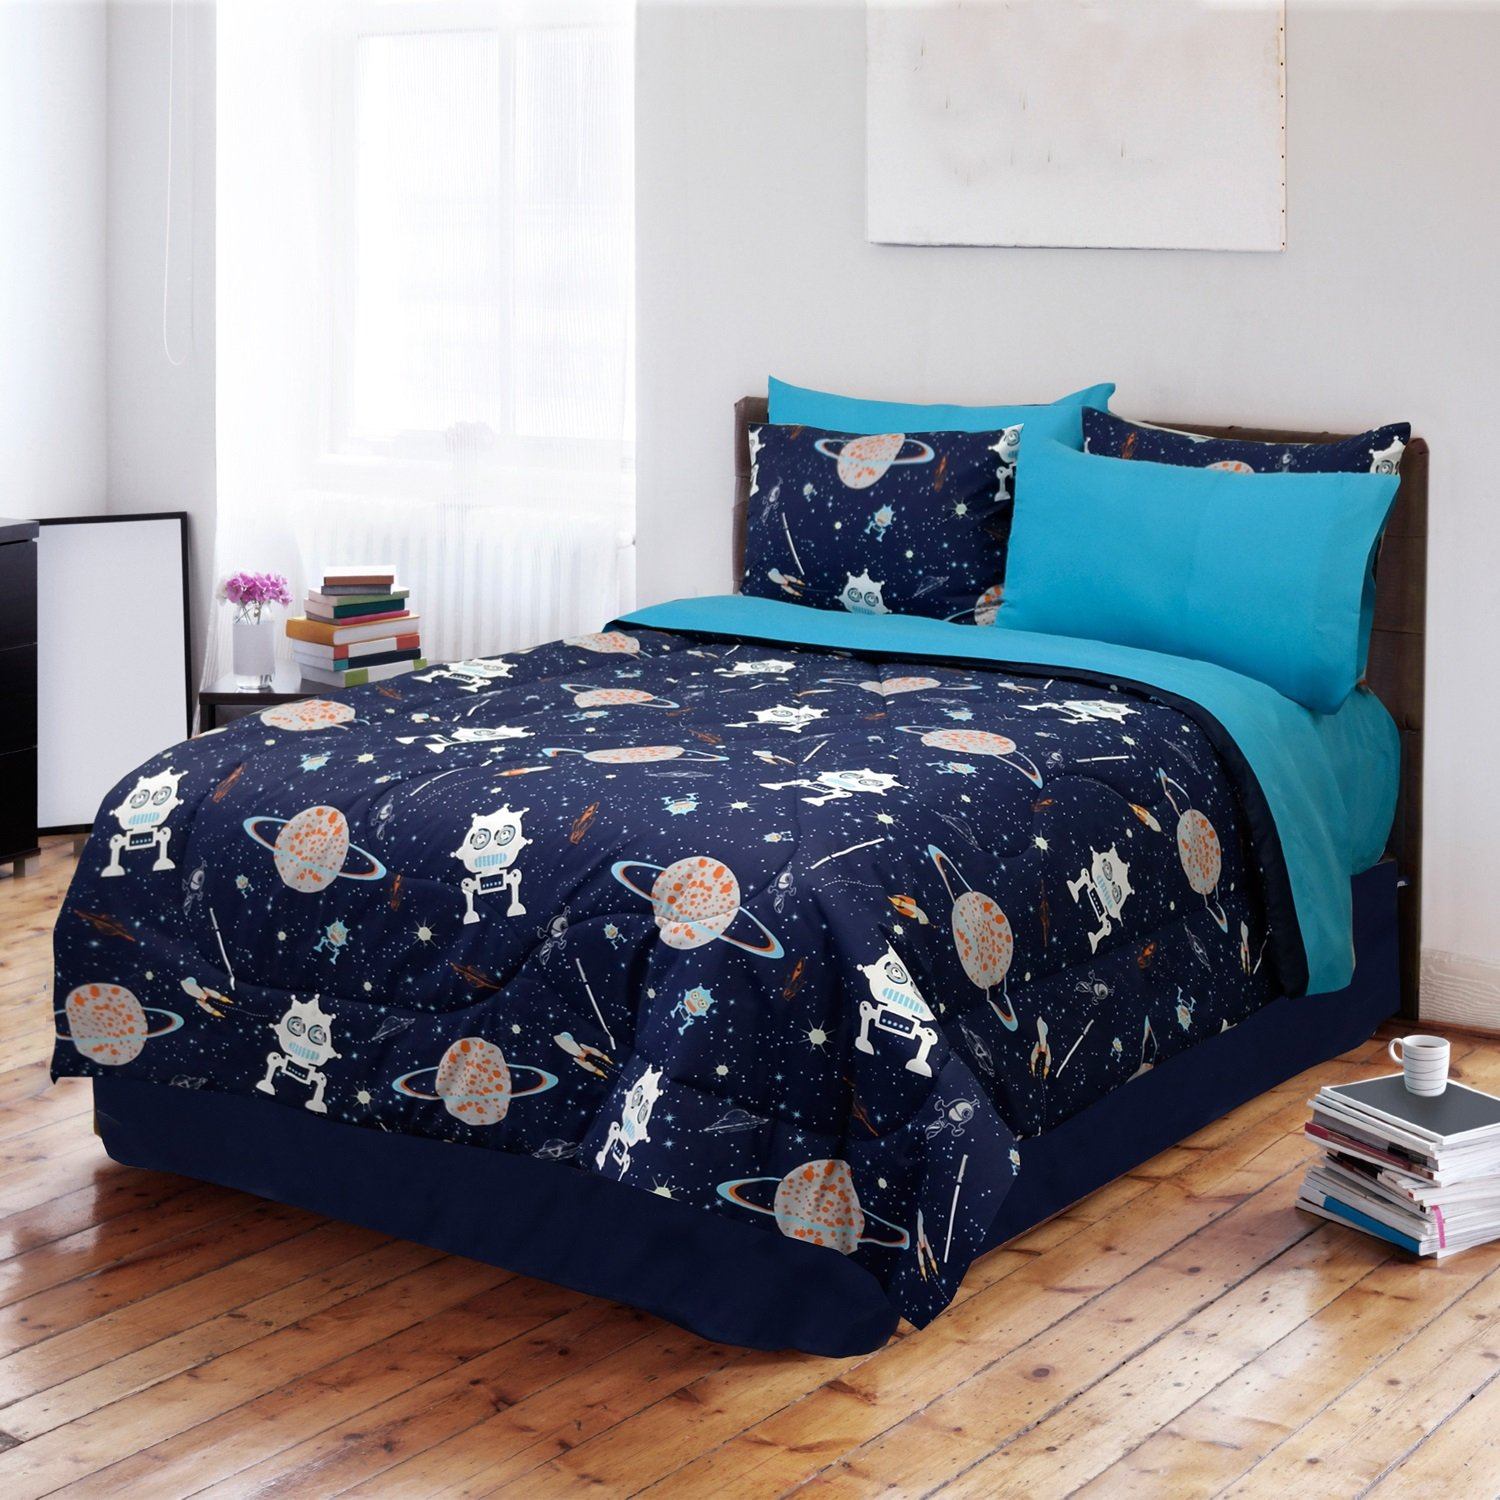 3 Piece Glow in The Dark Galaxy Themed Comforter Set Twin Size, Featuring Aliens Stars Outer Space Invaders Planets Saturn Milky Way Inspired, Colorful Solar System Kids Bedding, Blue, Multicolor